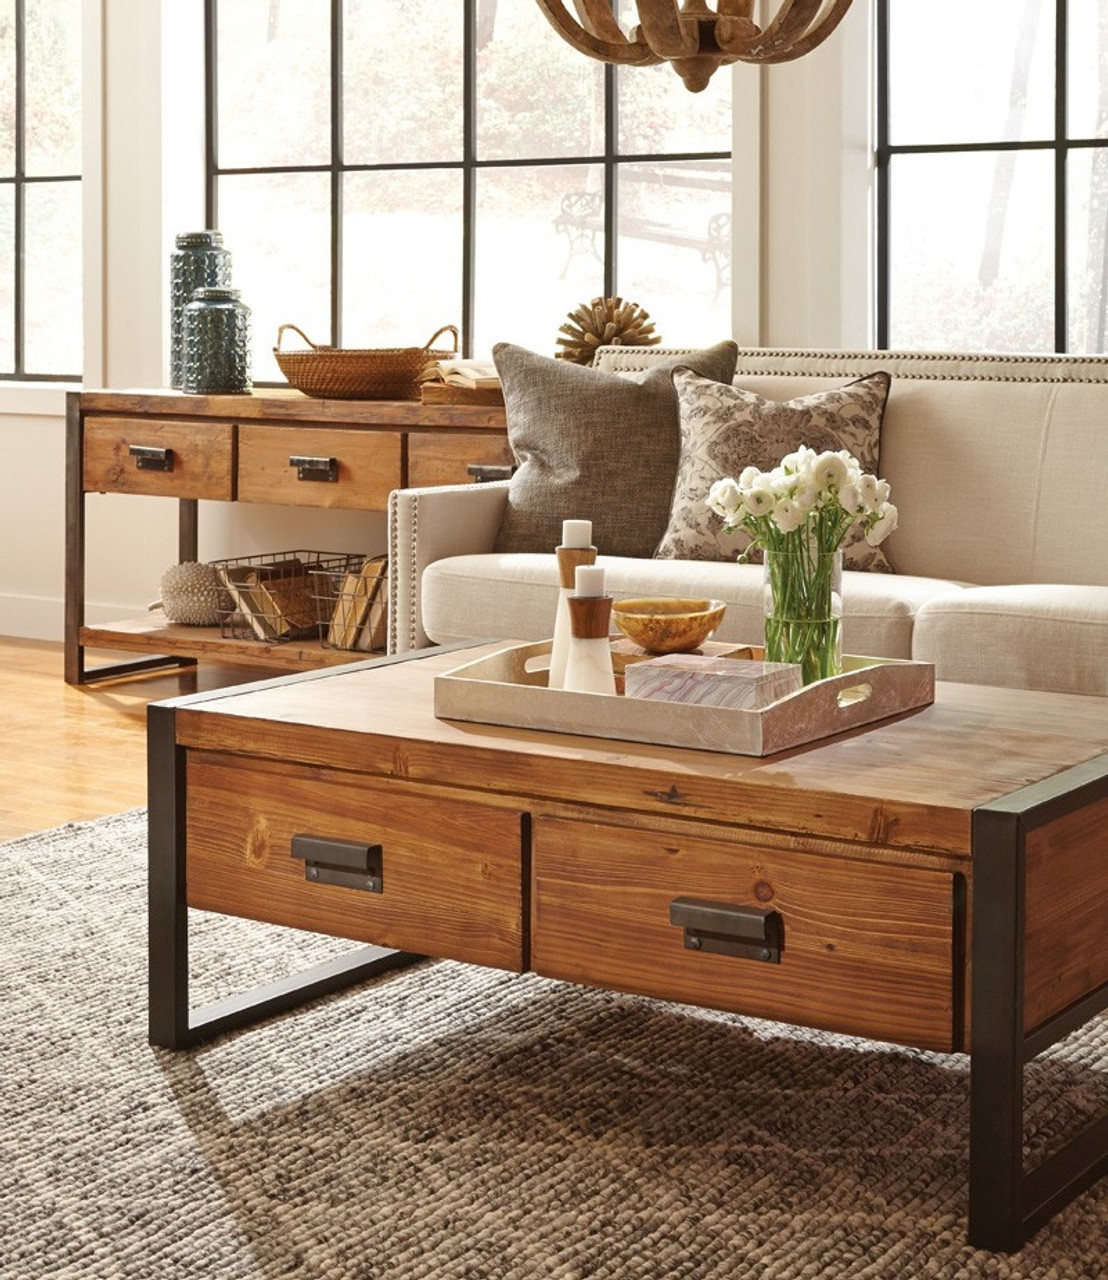 Industrial Coffee Table Images: Rustic Industrial Coffee Table With Drawers